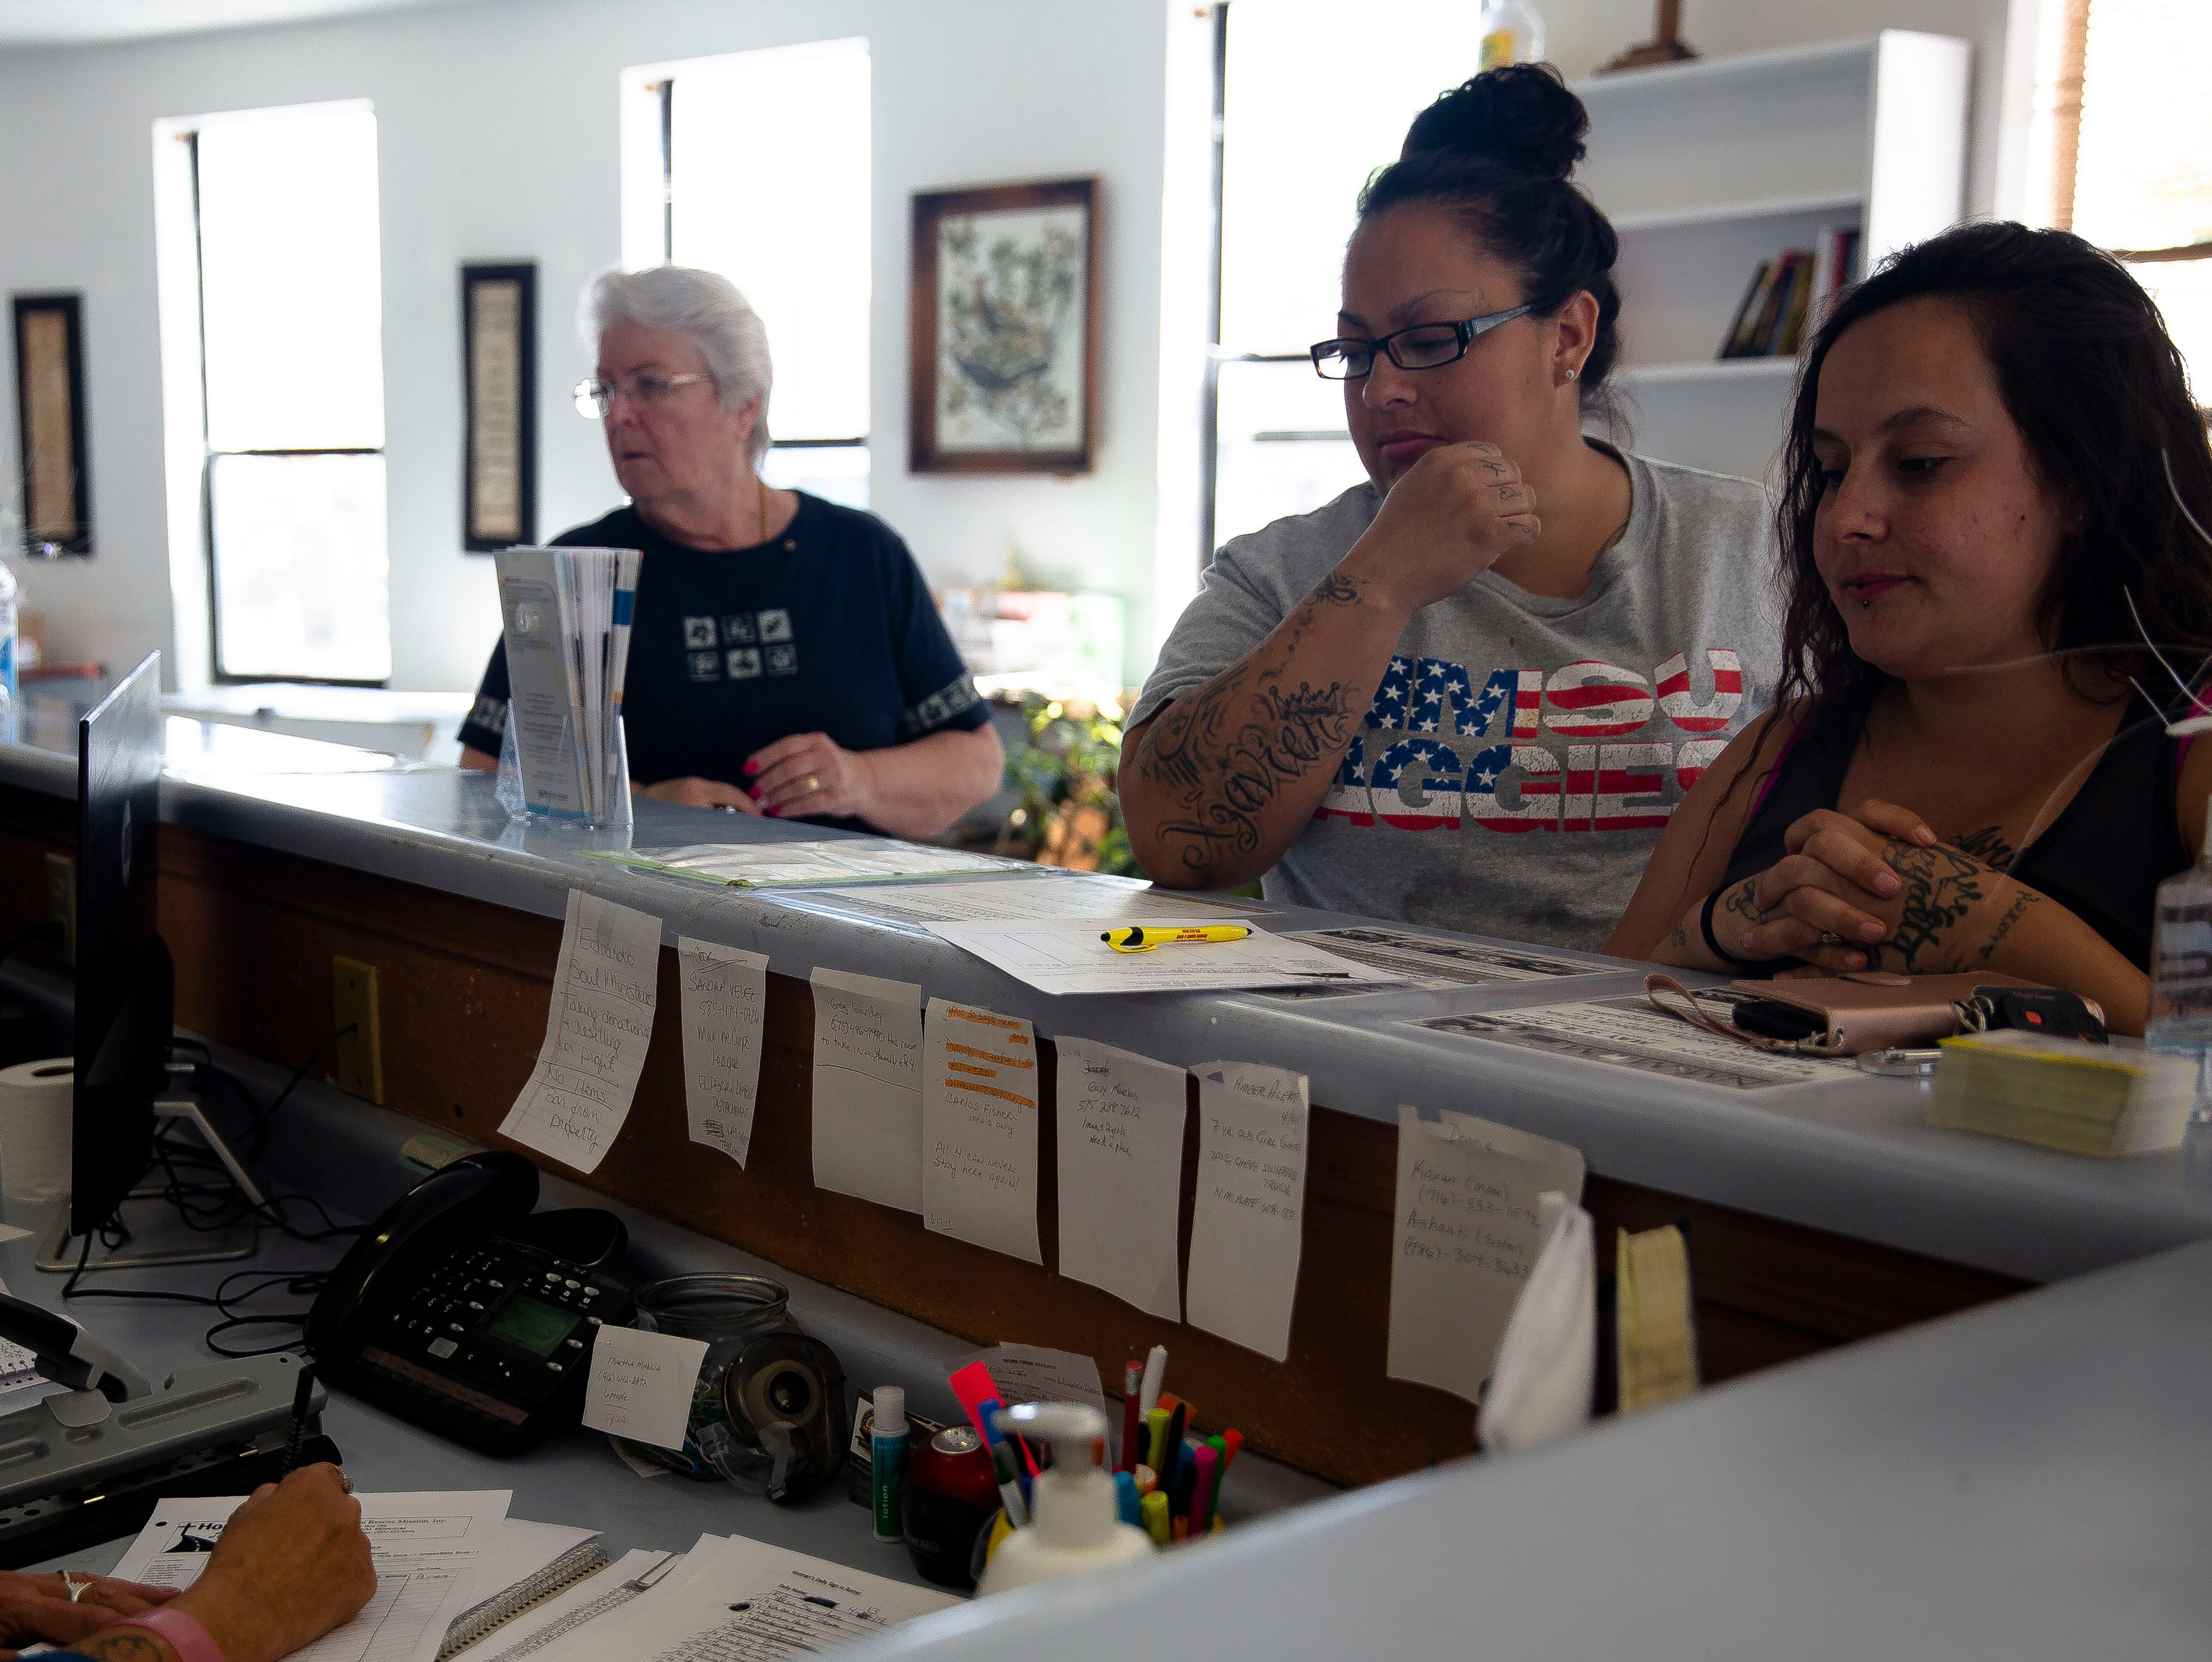 Las Cruces Gospel Rescue Mission worker Bob Reed talks with Sandra Beltran, background, who donated items for migrants Monday April 15, 2019, while shelter worker Chris Ostic, foreground, signs up volunteers Karen Escobedo, center, and Suzanne Lucero.